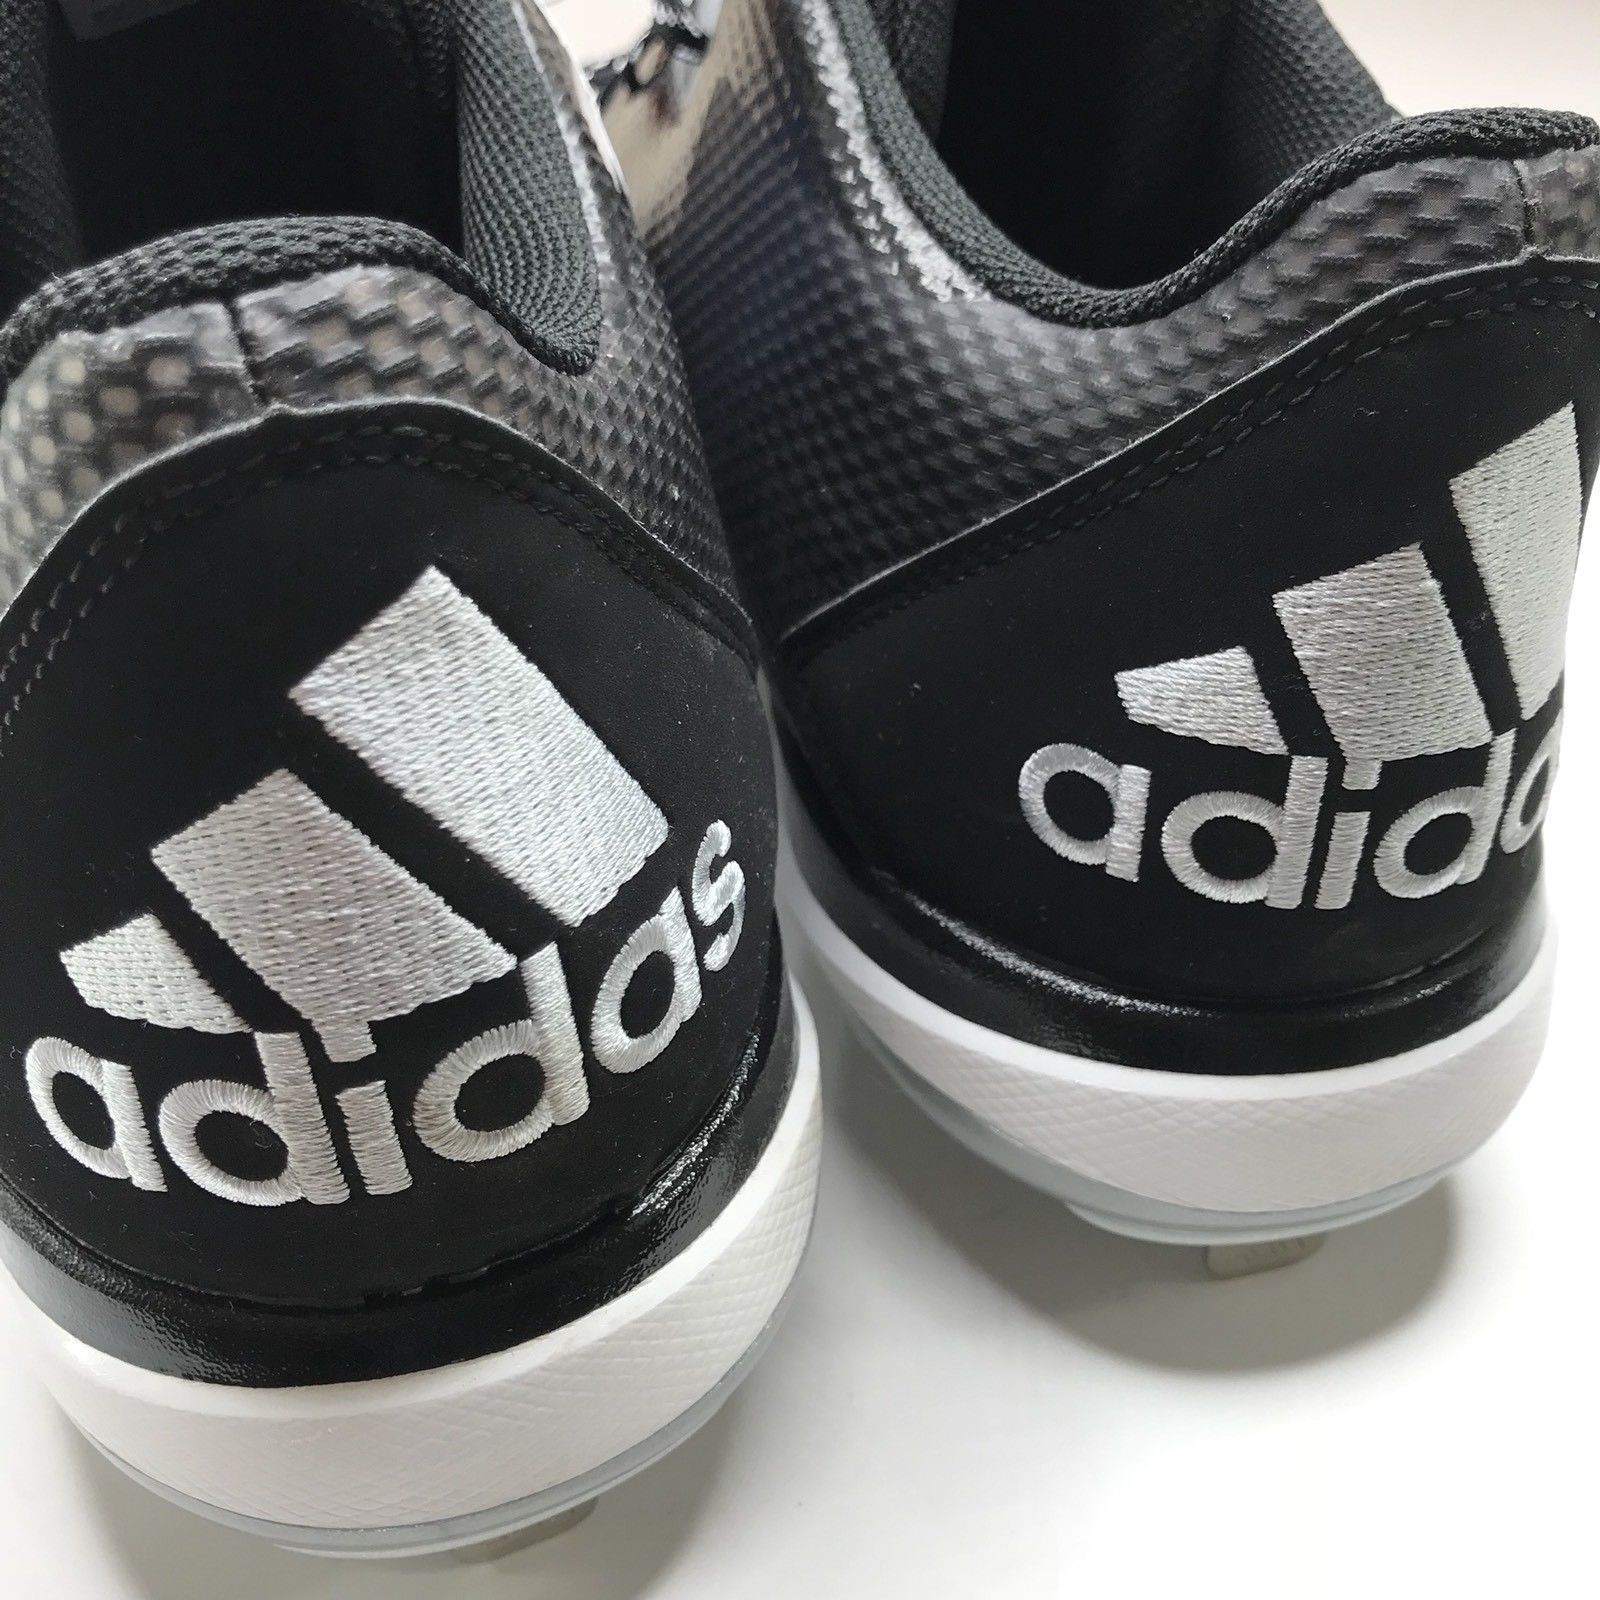 detailed look 98373 ce043 Adidas Dual Threat Cleats NEW Men Size 13 Black White Athletic Sport Shoes